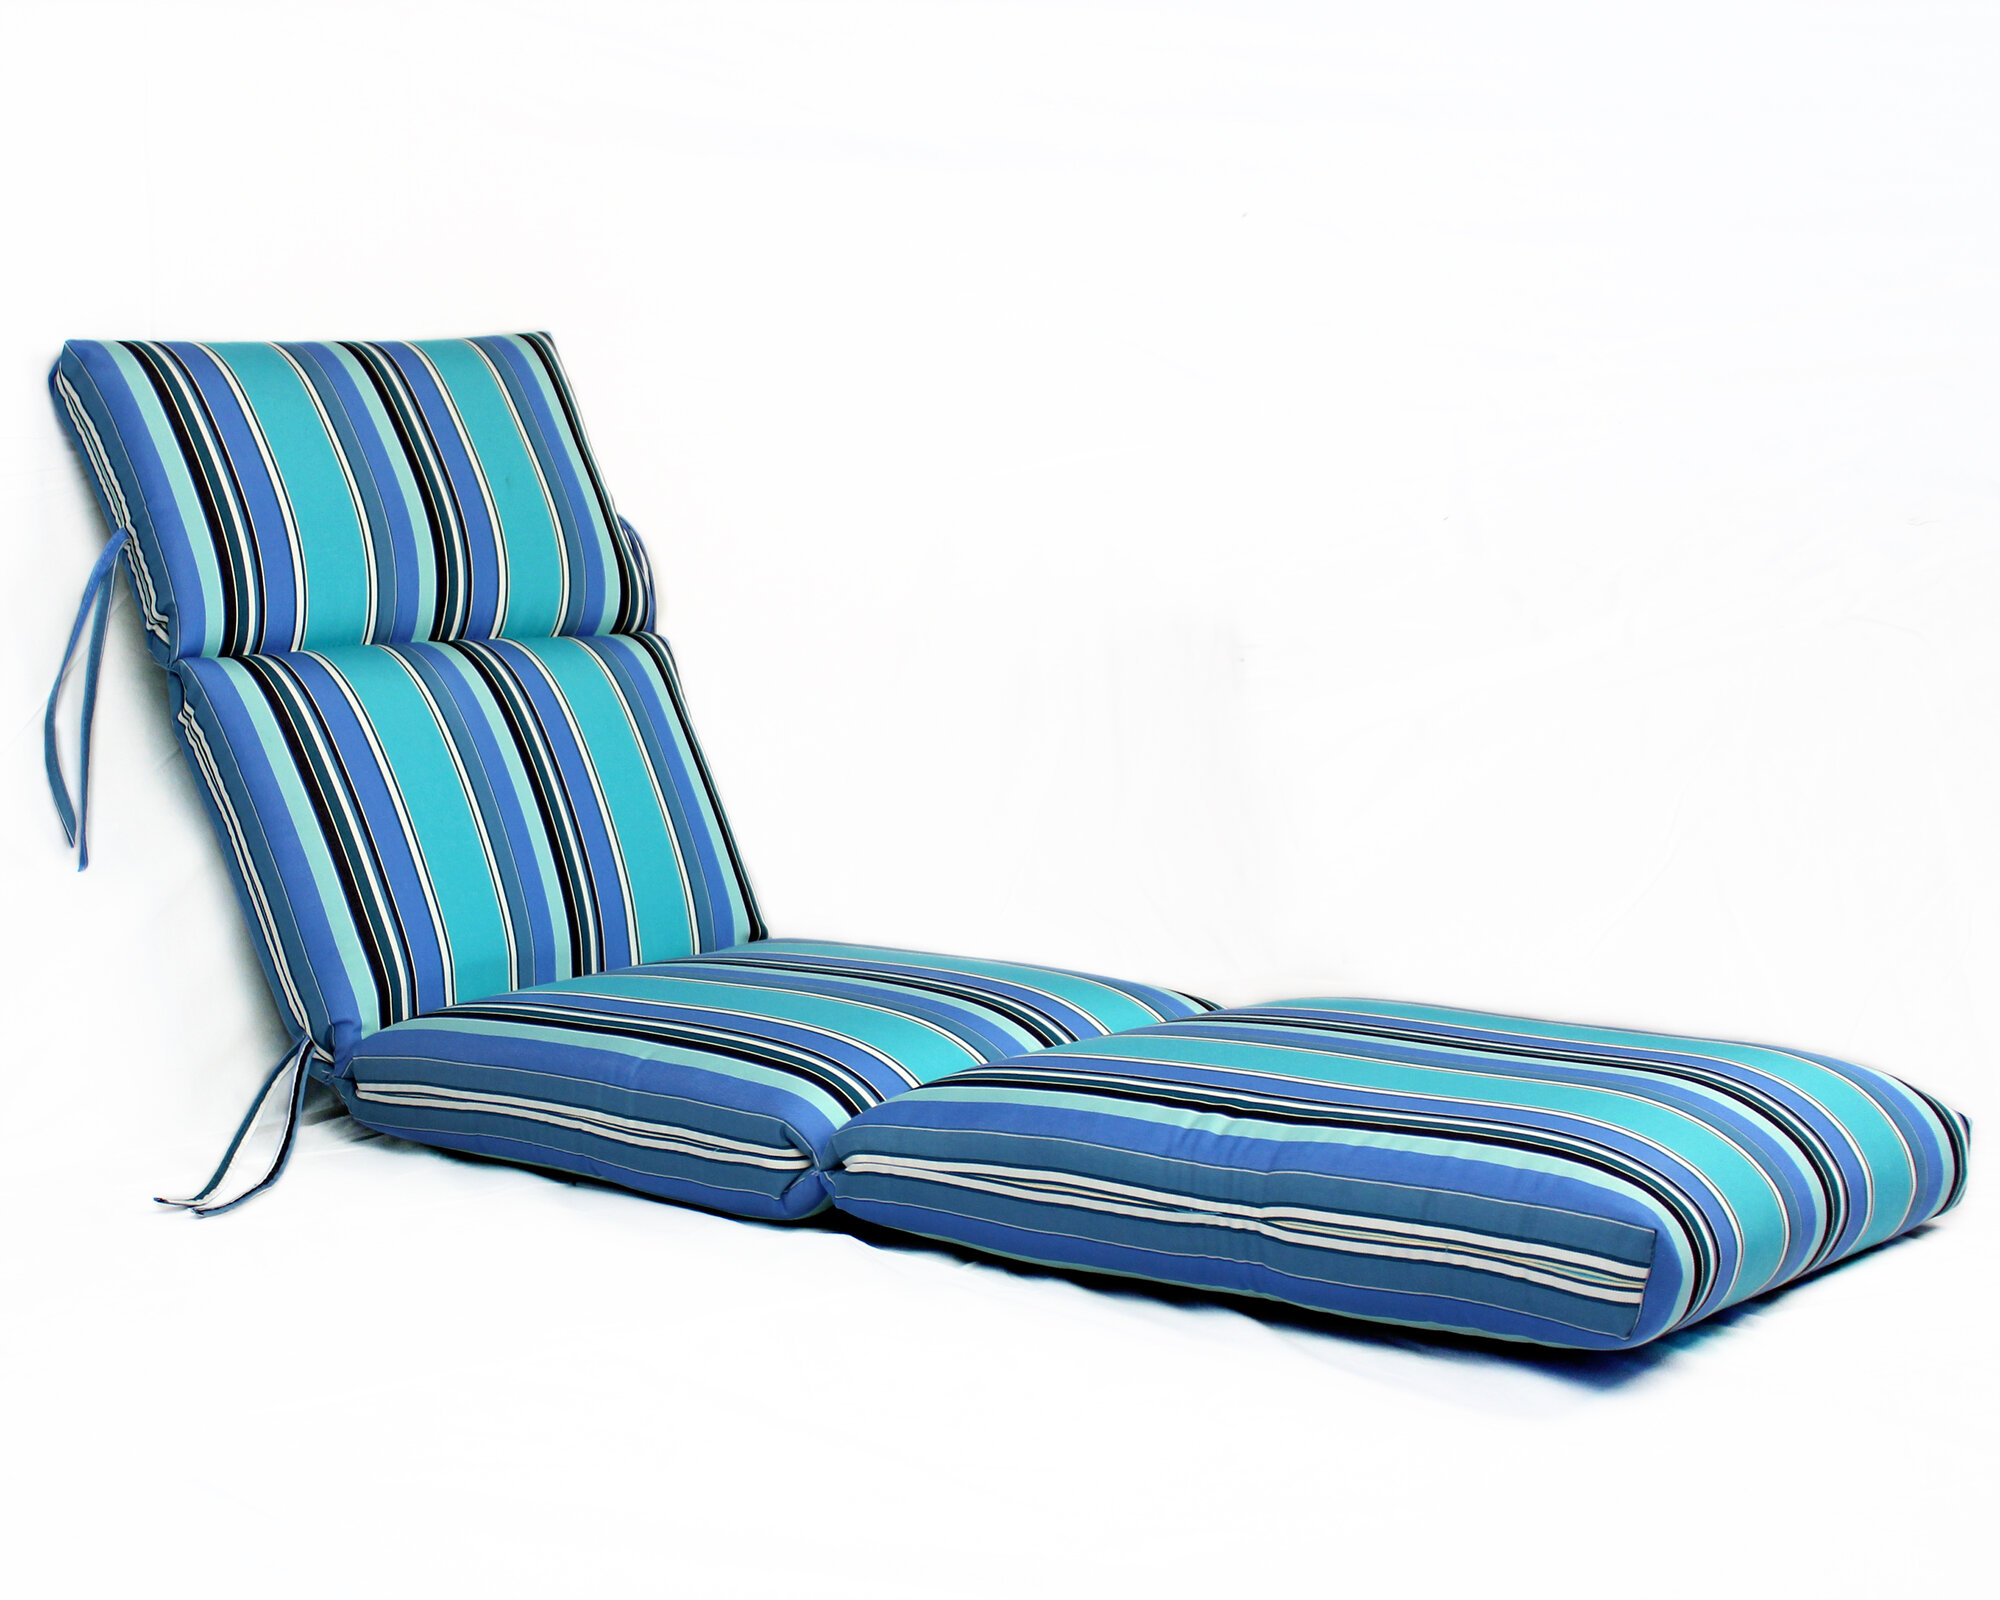 Comfort Clas Outdoor Sunbrella Chaise Lounge Cushion Ebay